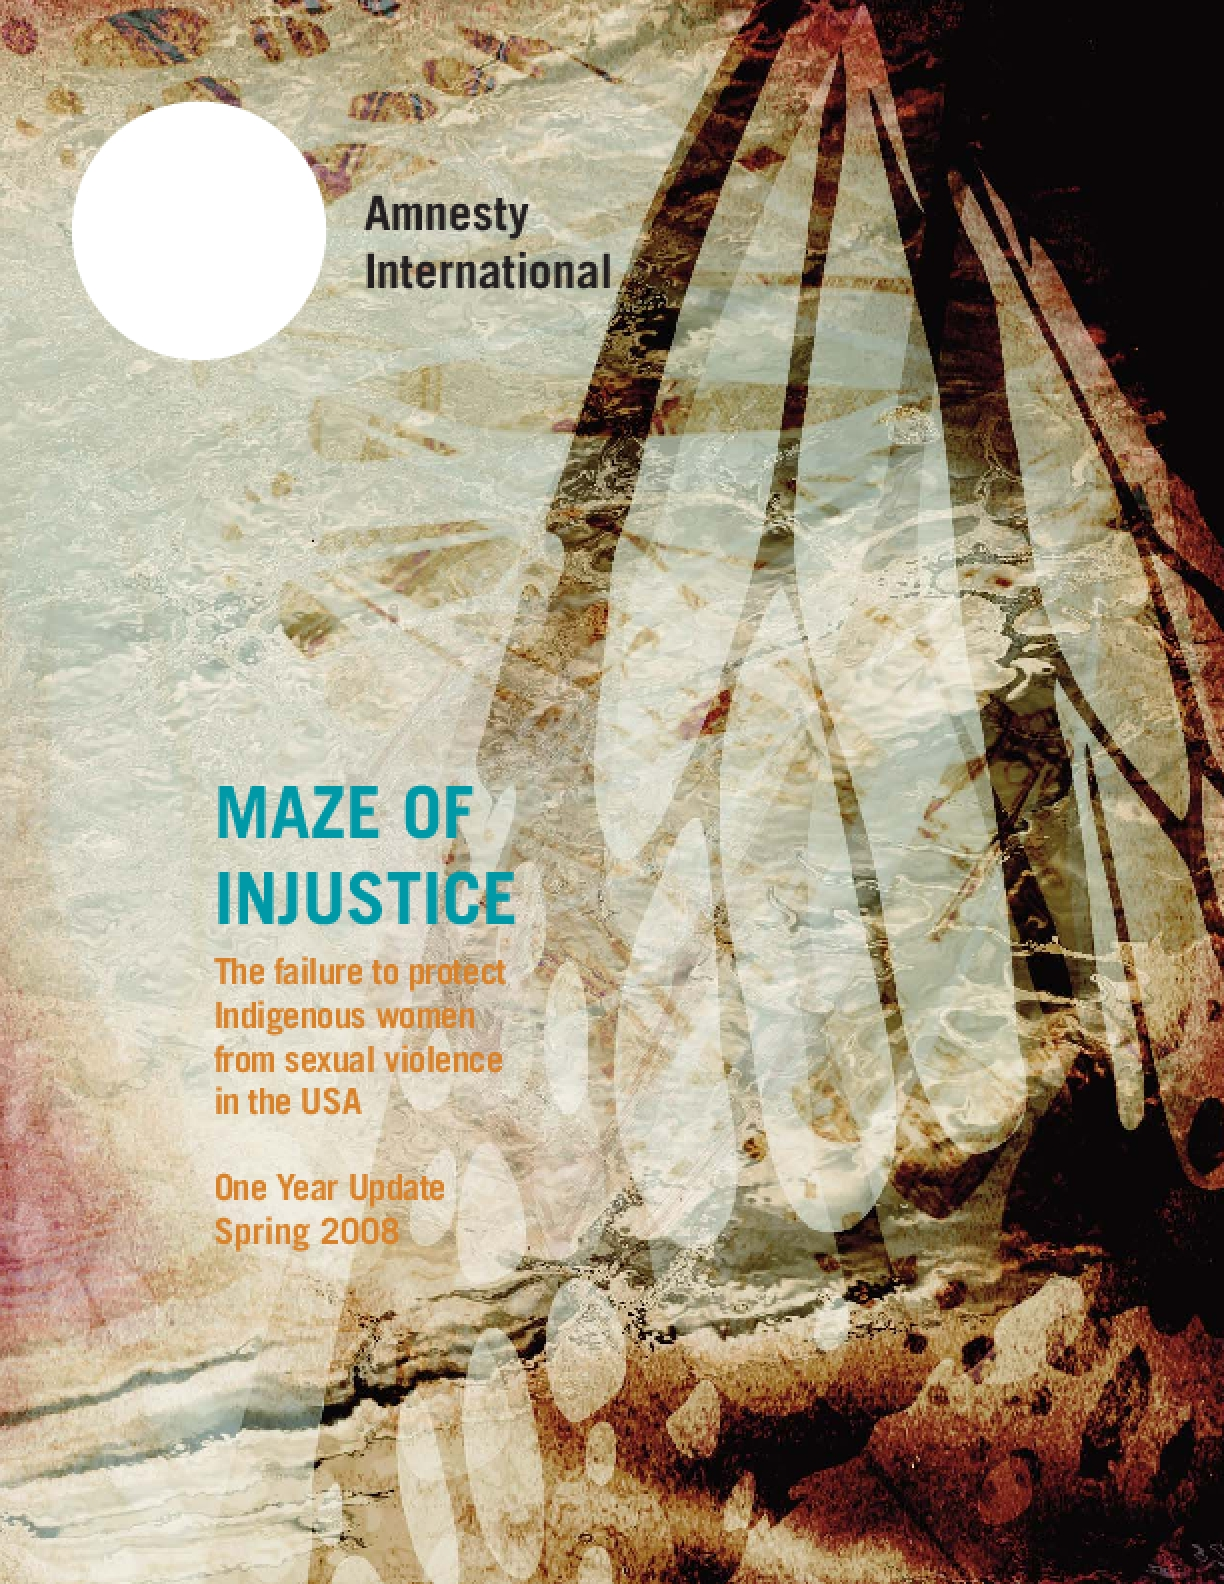 Maze of Injustice: The Failure to Protect Indigenous Women from Sexual Violence in the USA - One Year Update Spring 2008